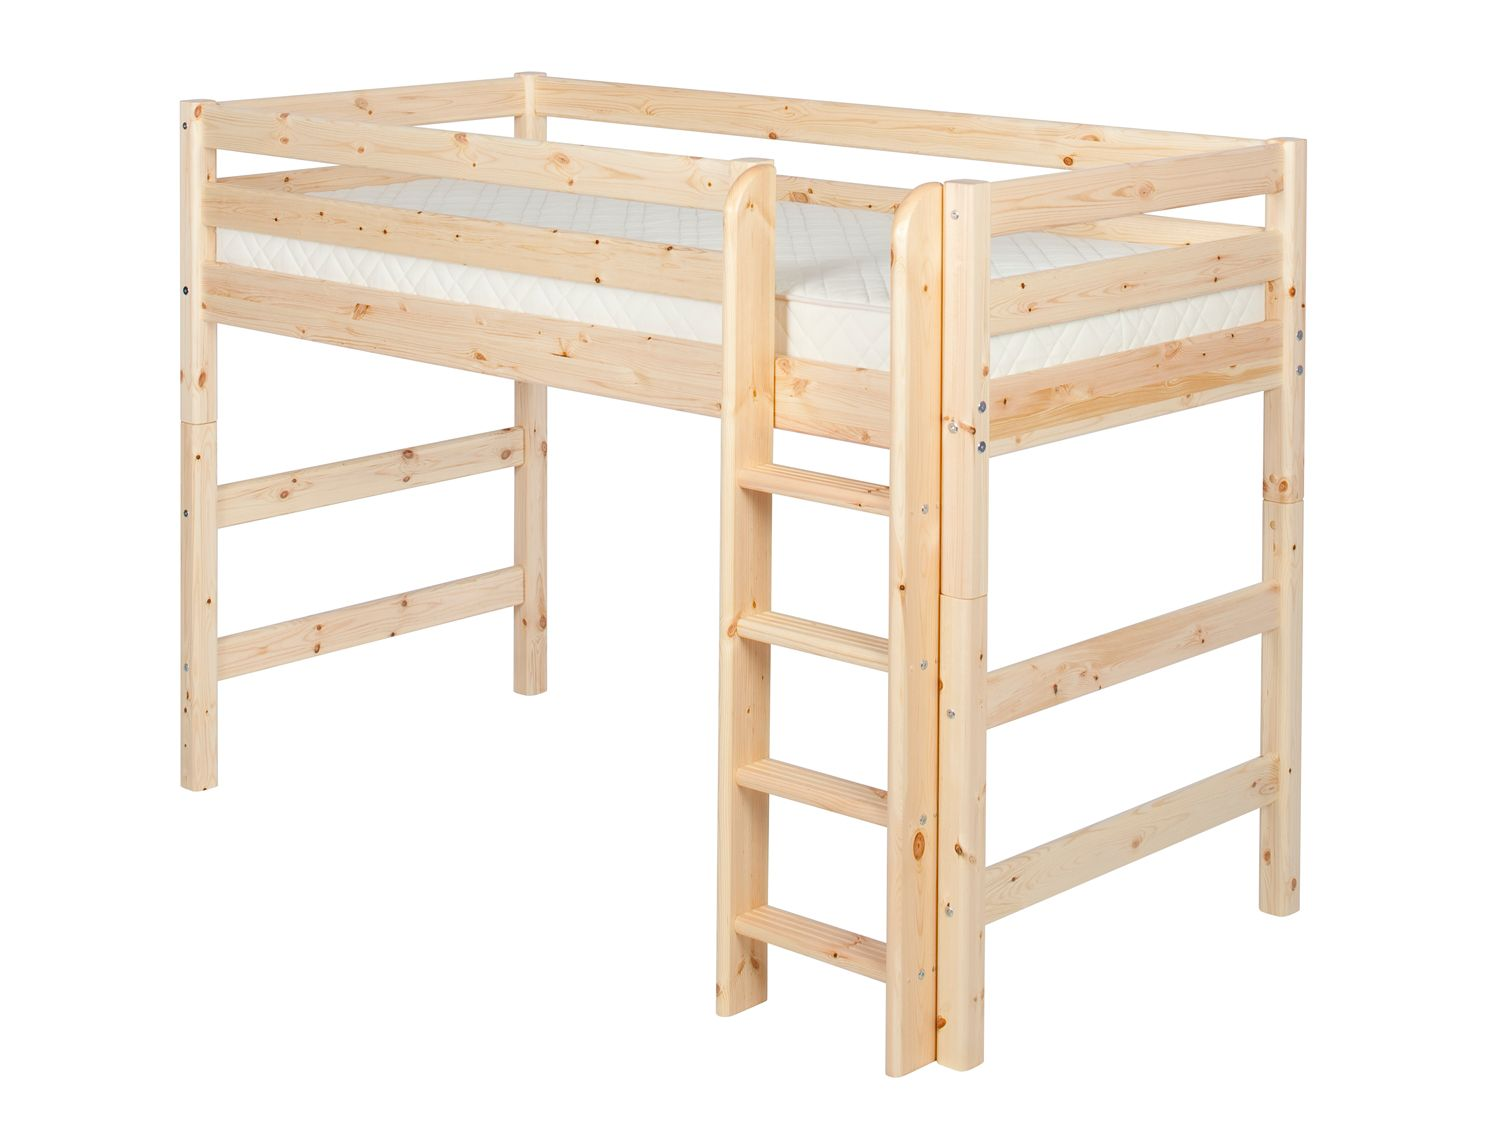 Single semi-high bed with straight ladder